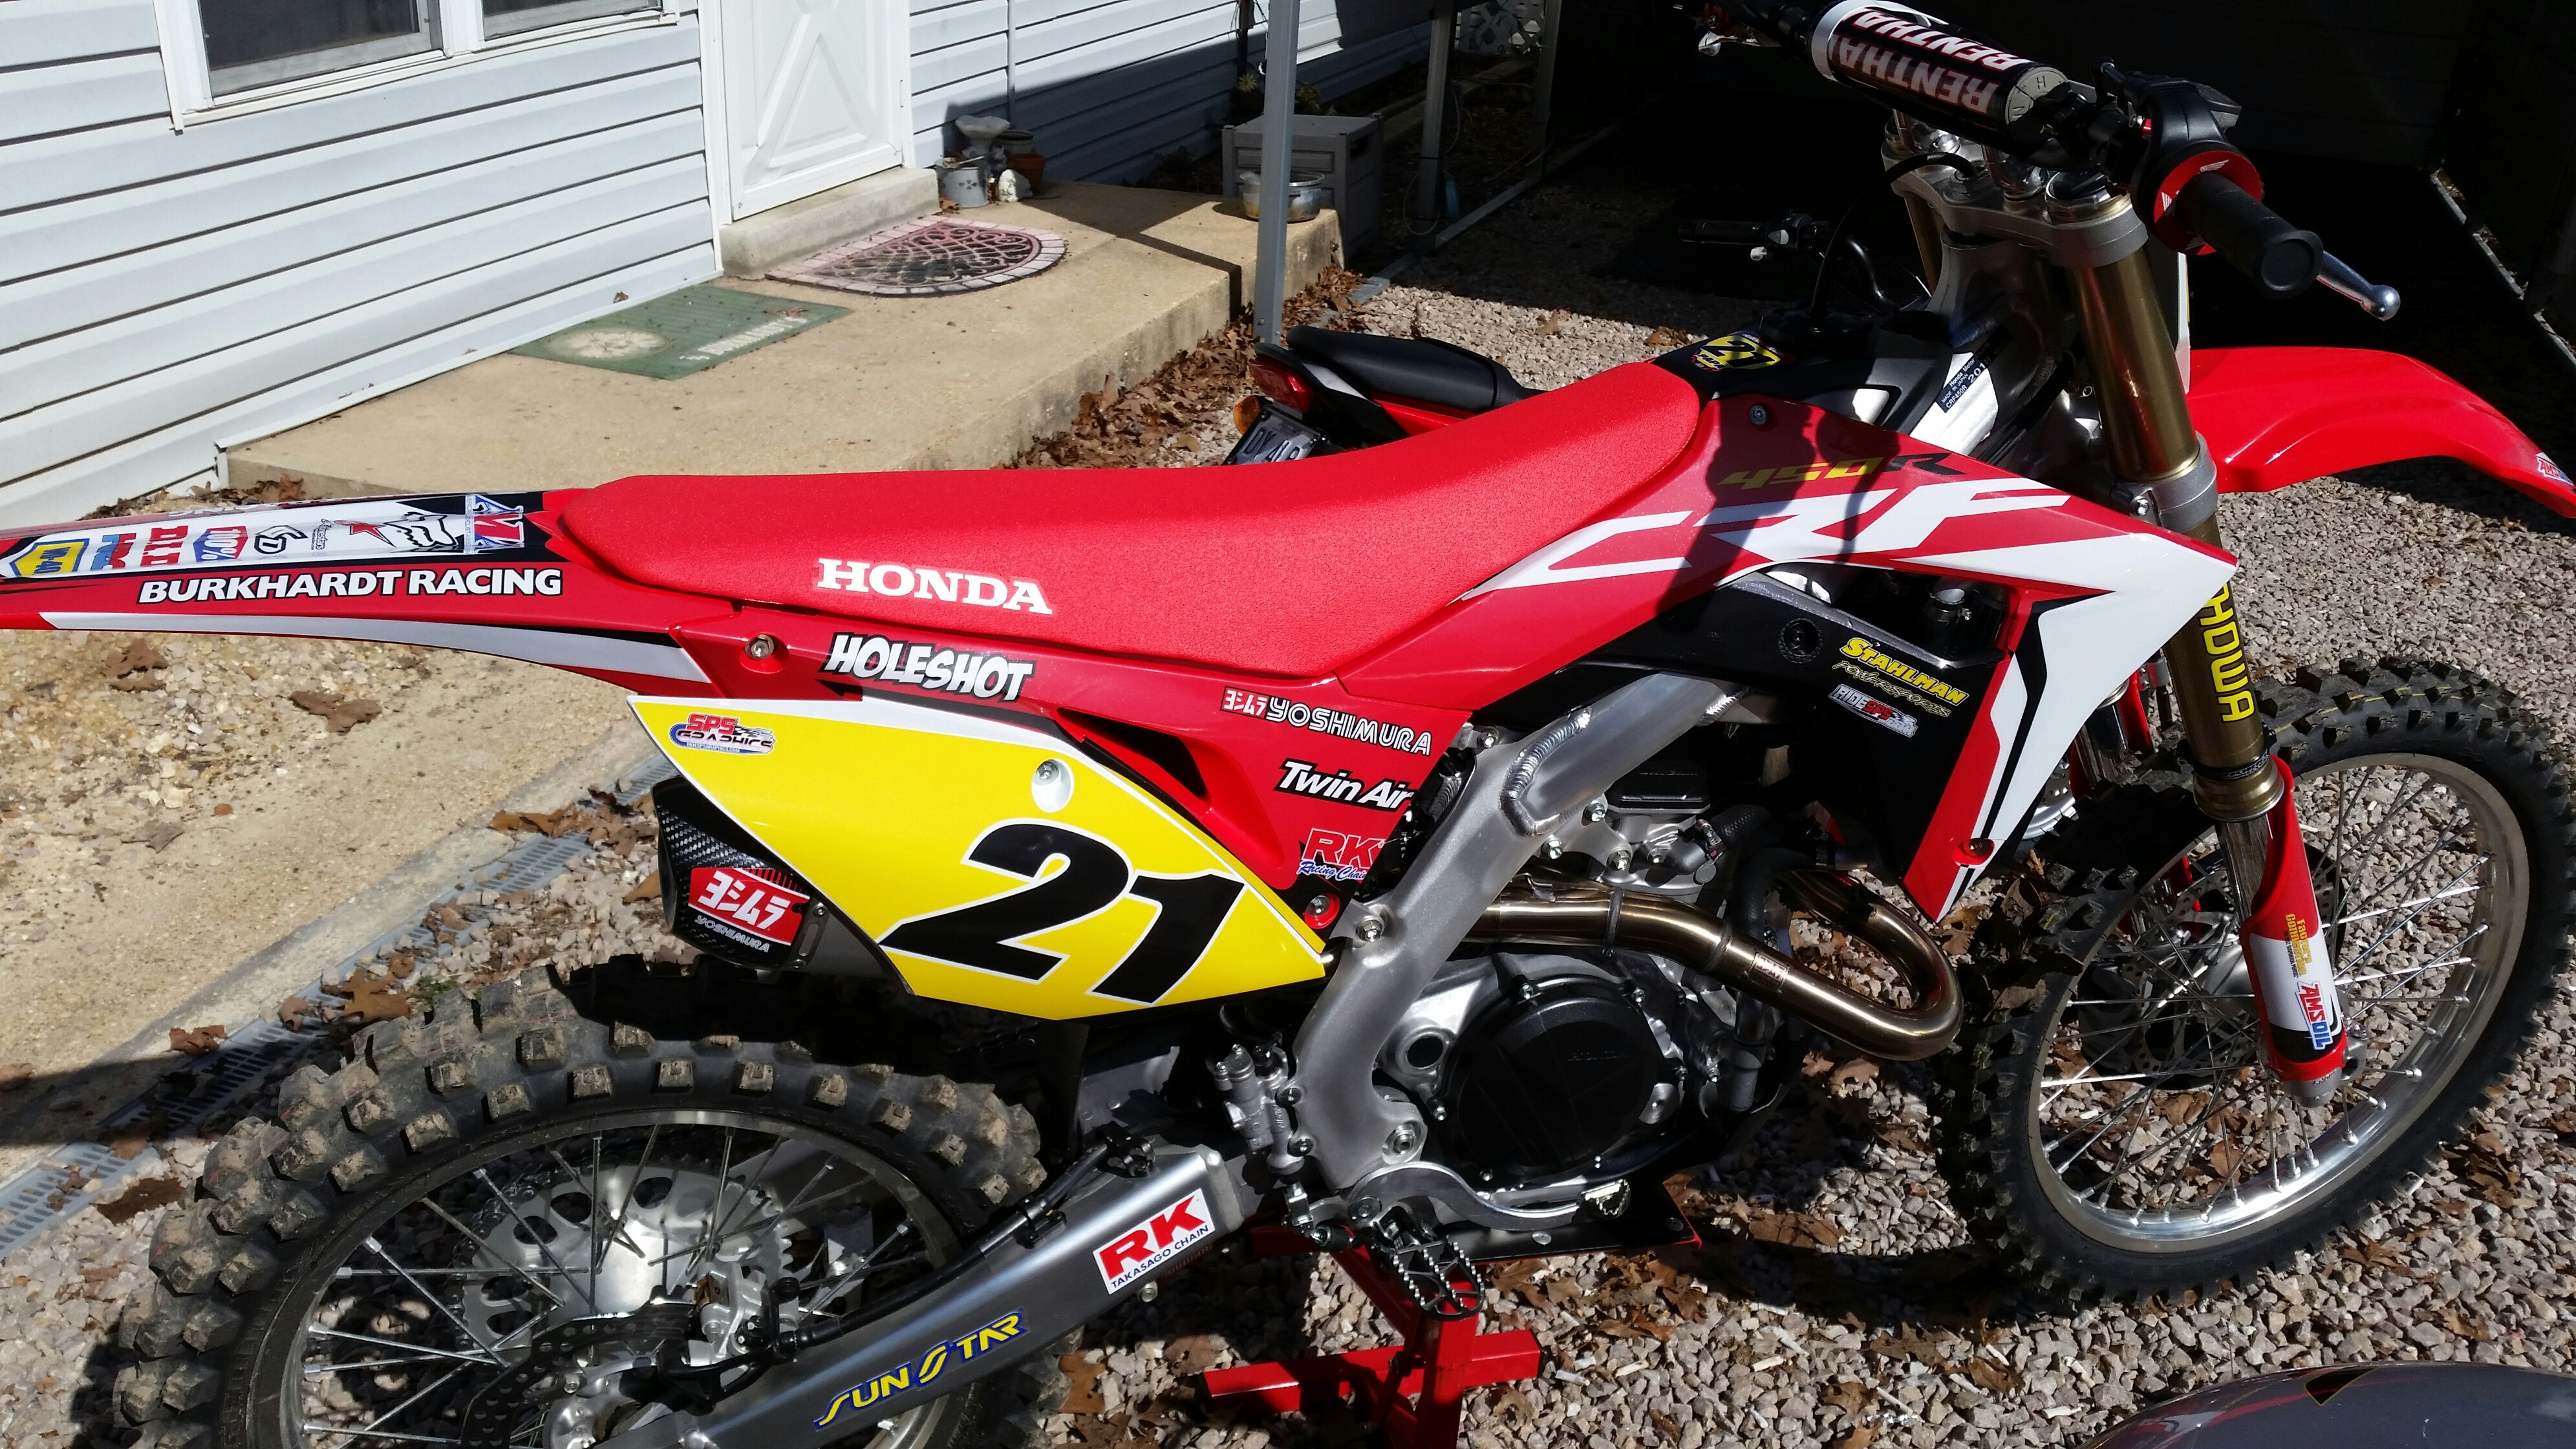 2018 CRF450R - Moto-Related - Motocross Forums / Message Boards